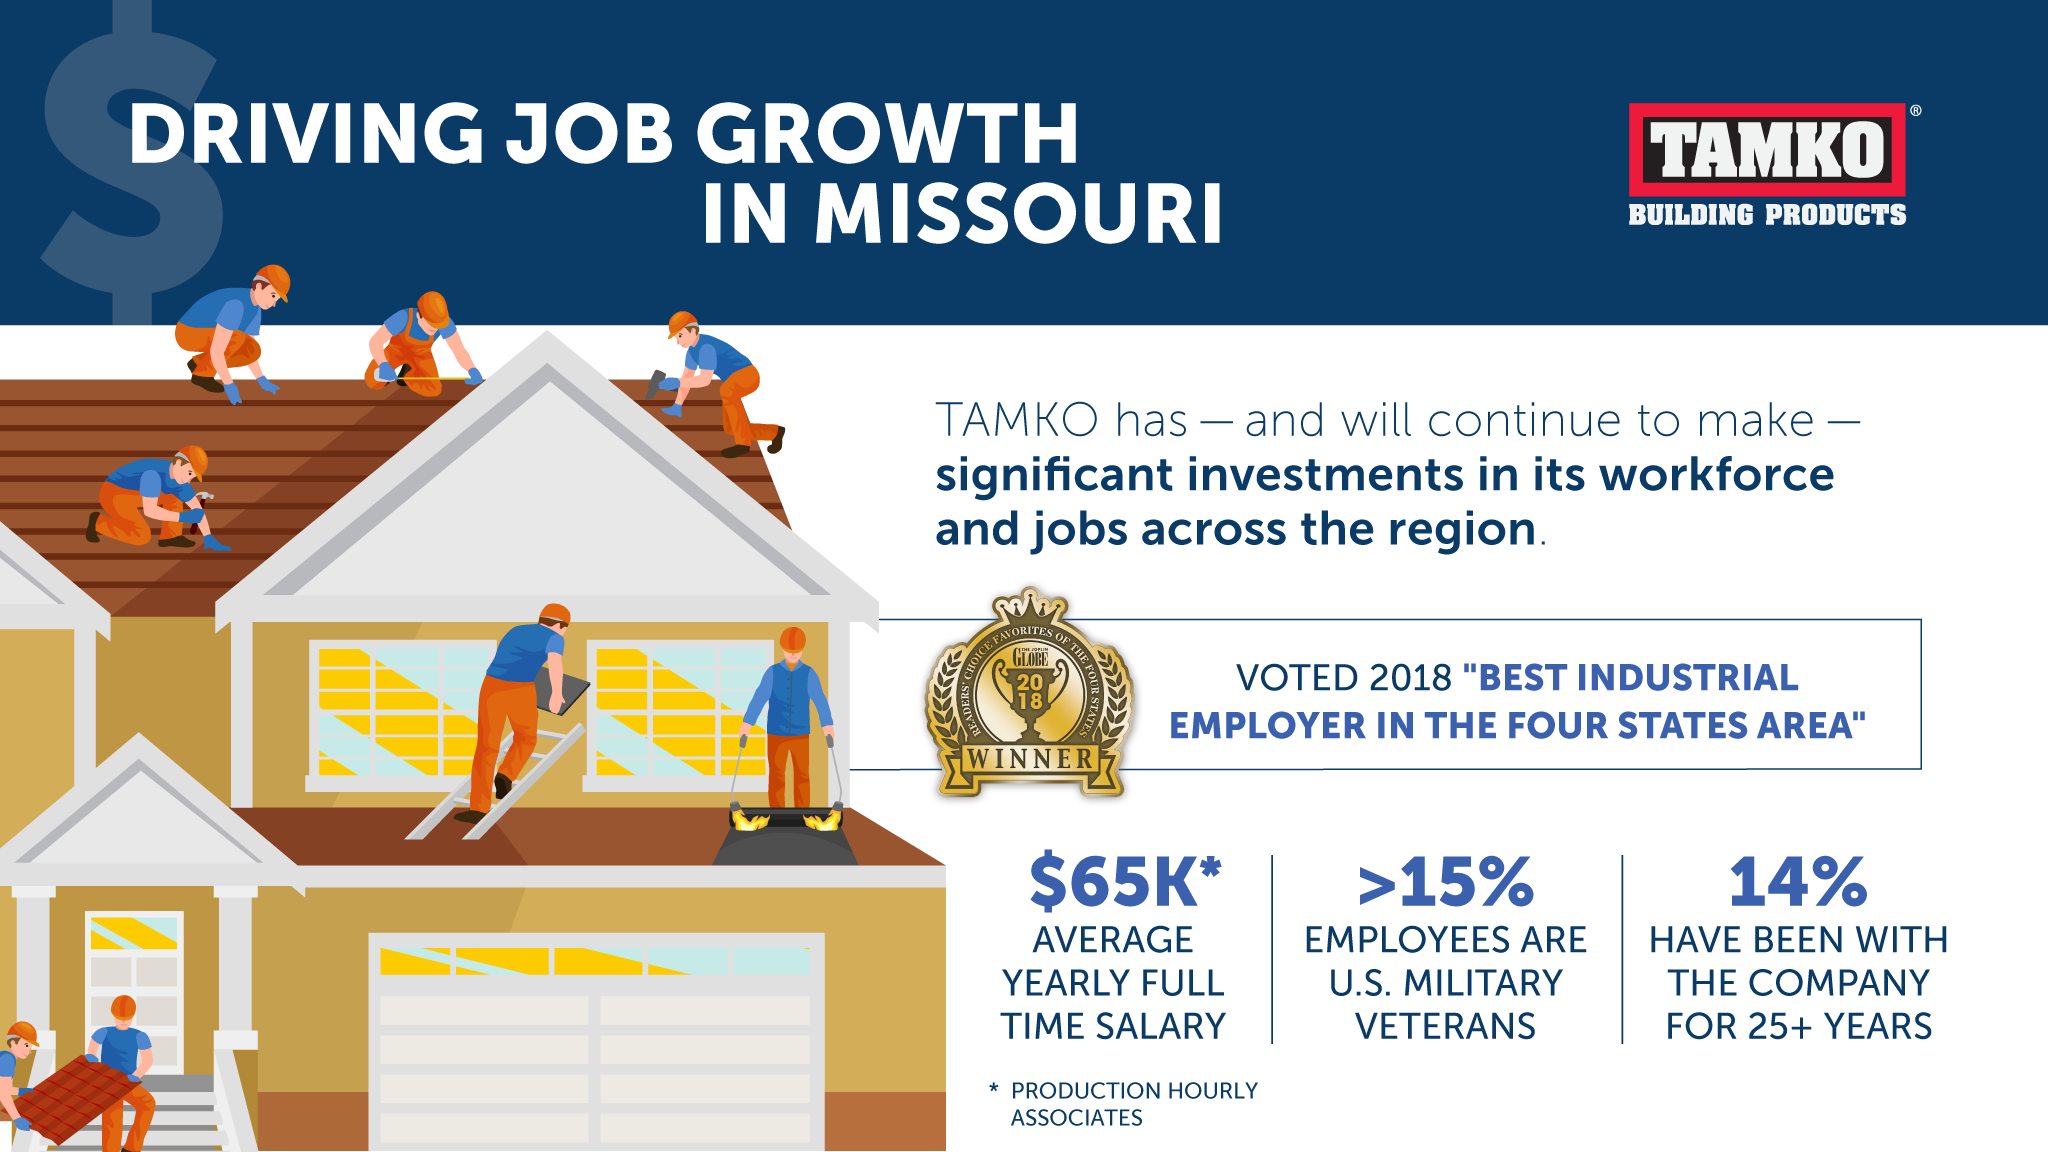 TAMKO - Driving Job Growth in Missouri